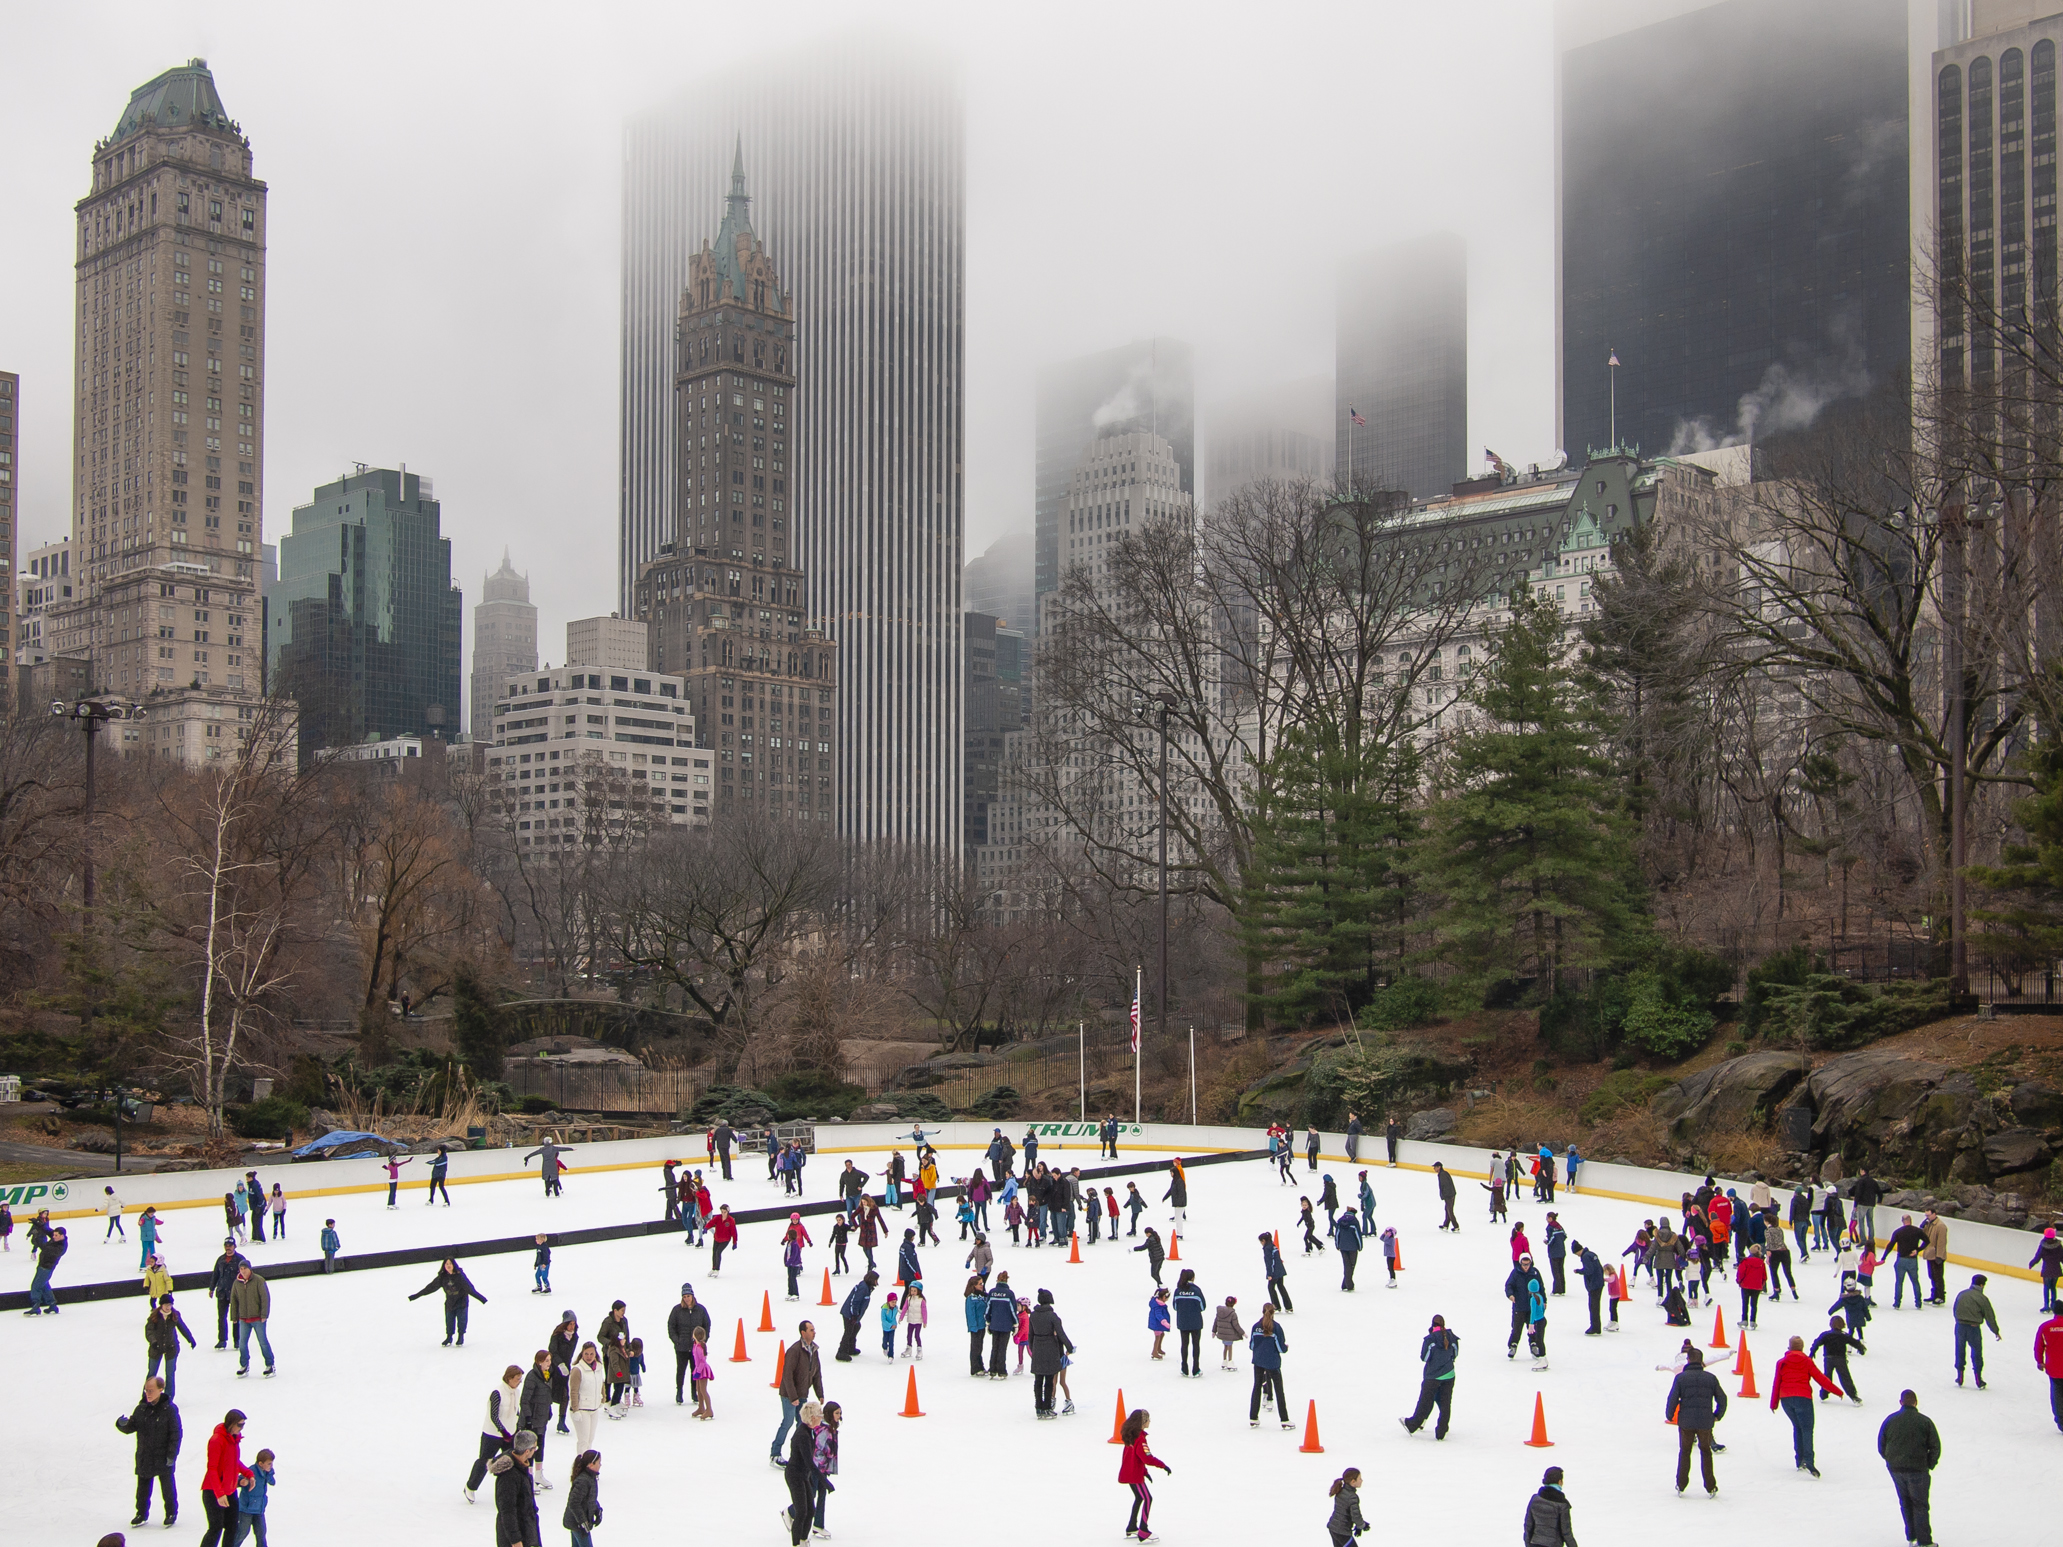 Wollman Rink - January 2013 © Arthur Nager – Courtesy Ilon Art Gallery